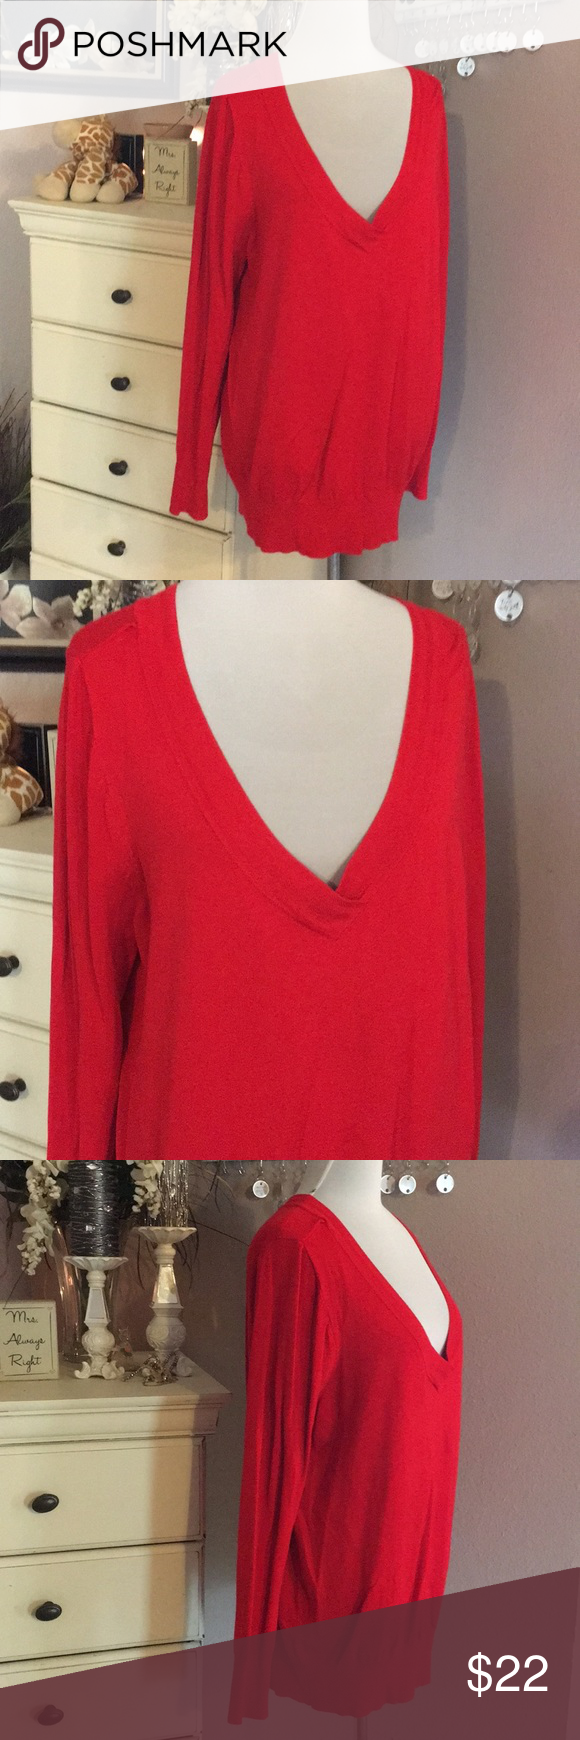 d83c2e20861c4c Lane Bryant sweater Lane Bryant red sweater. Like new condition size 18 20.  Rayon and nylon fabric. Soft. Lane Bryant Sweaters V-Necks